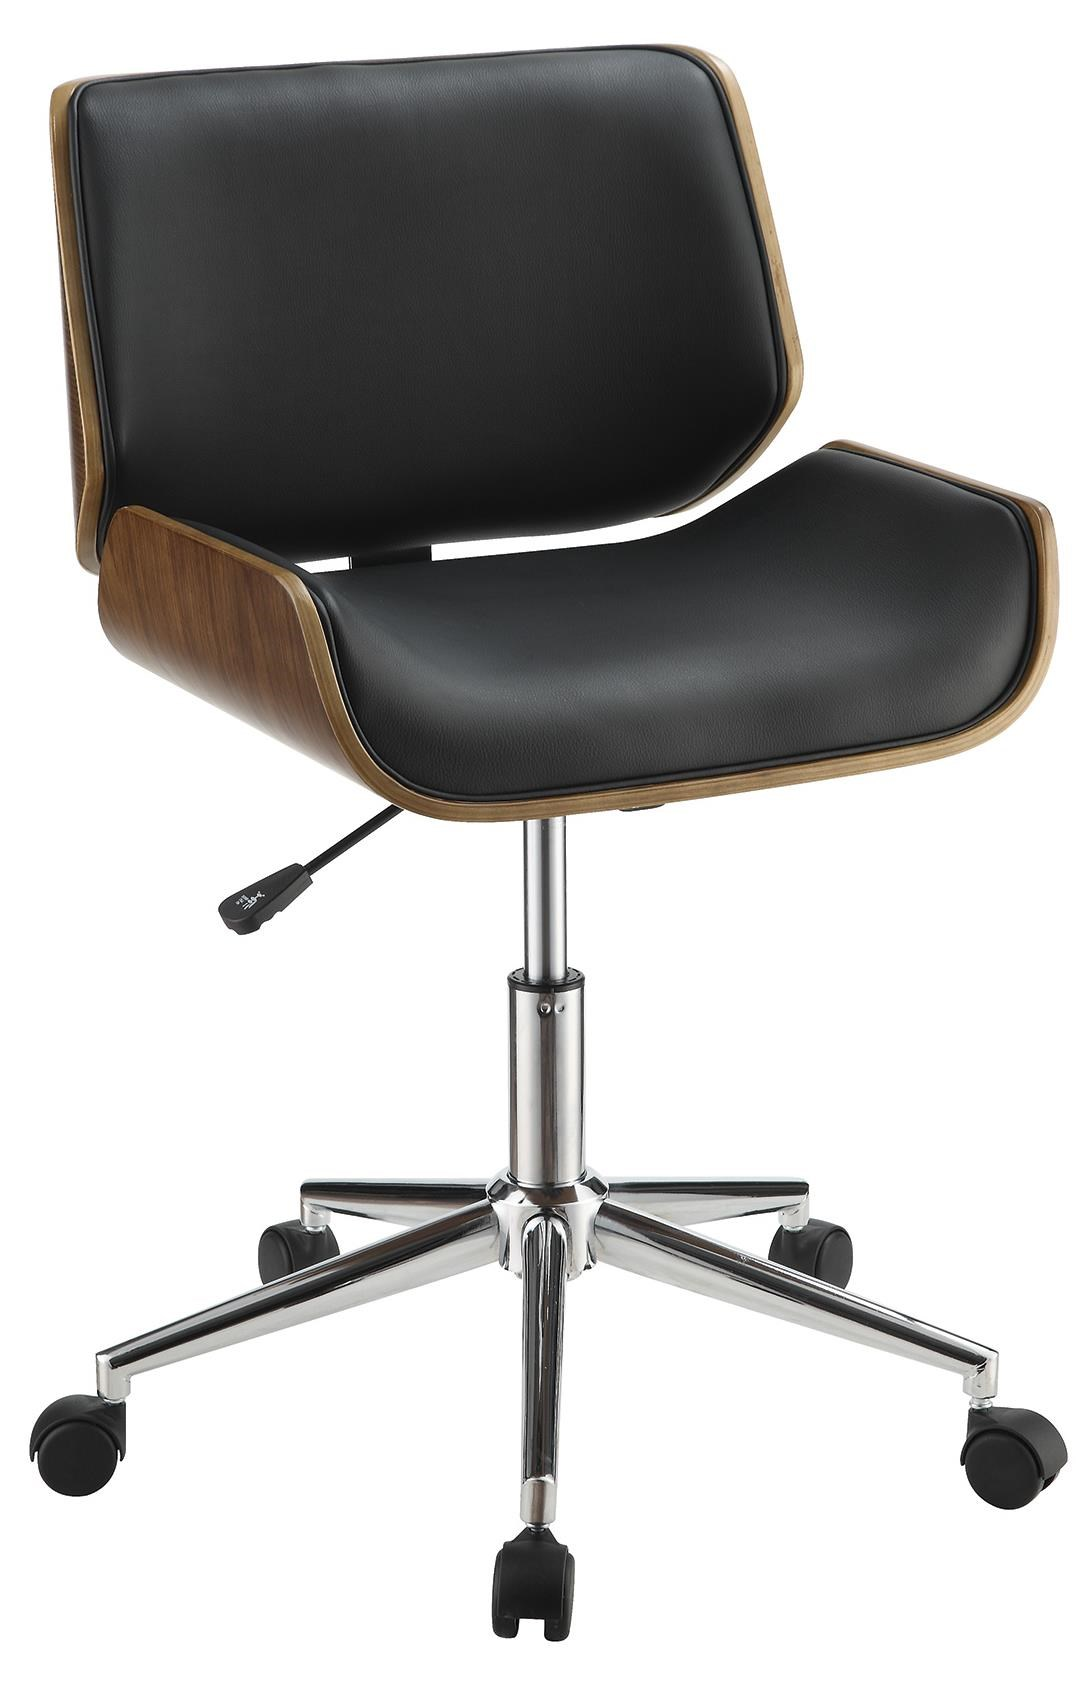 Coaster fice Chairs Contemporary Leatherette fice Chair